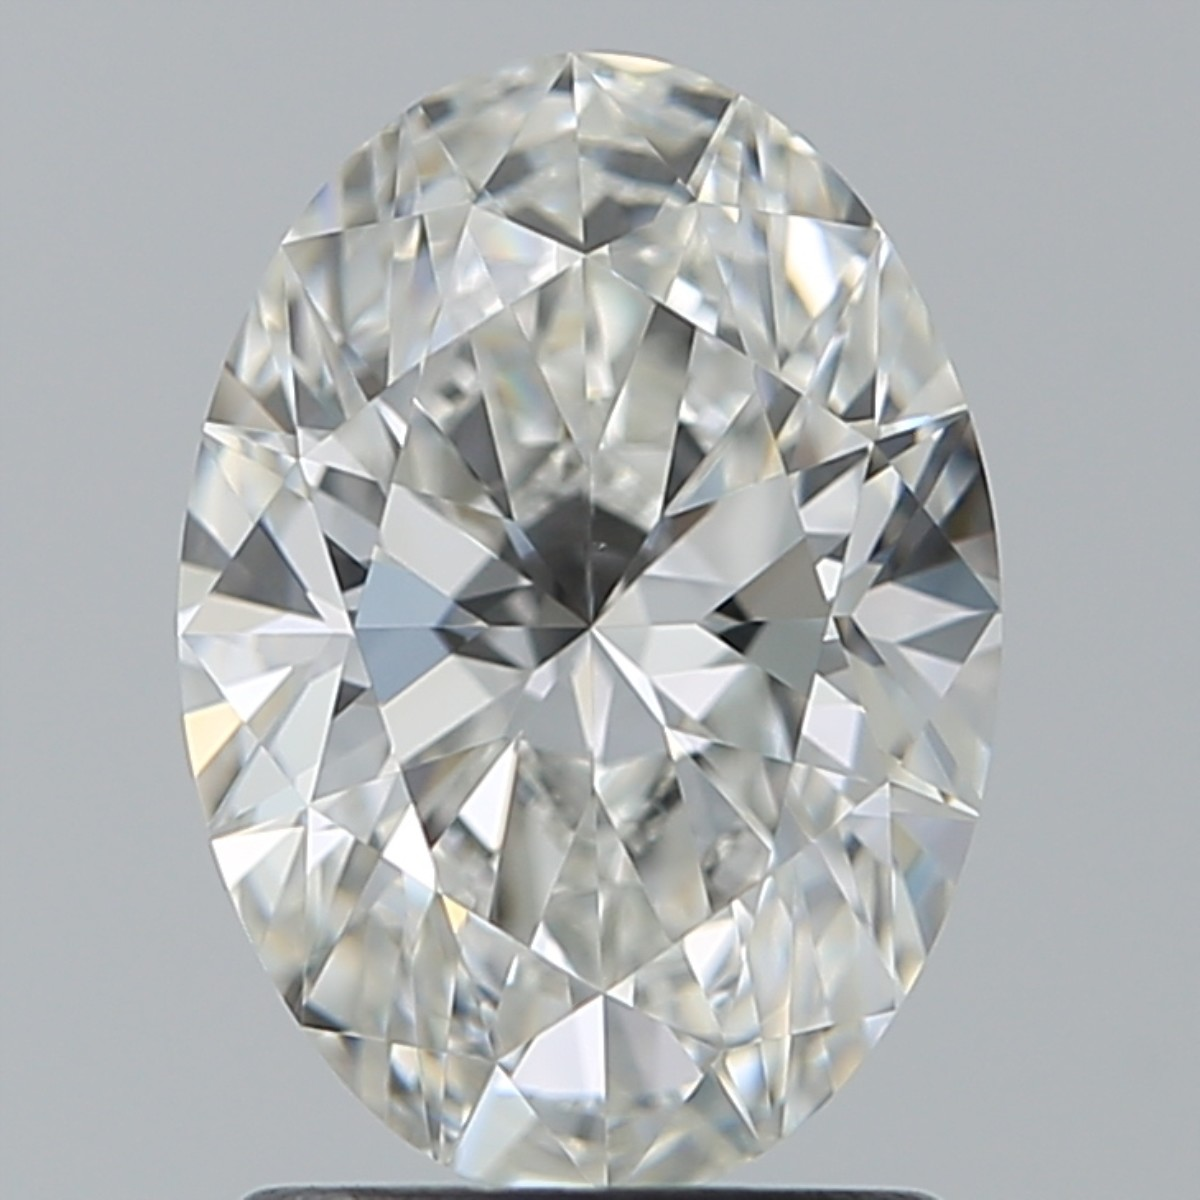 1.52 Carat Oval Diamond (G/VS1)